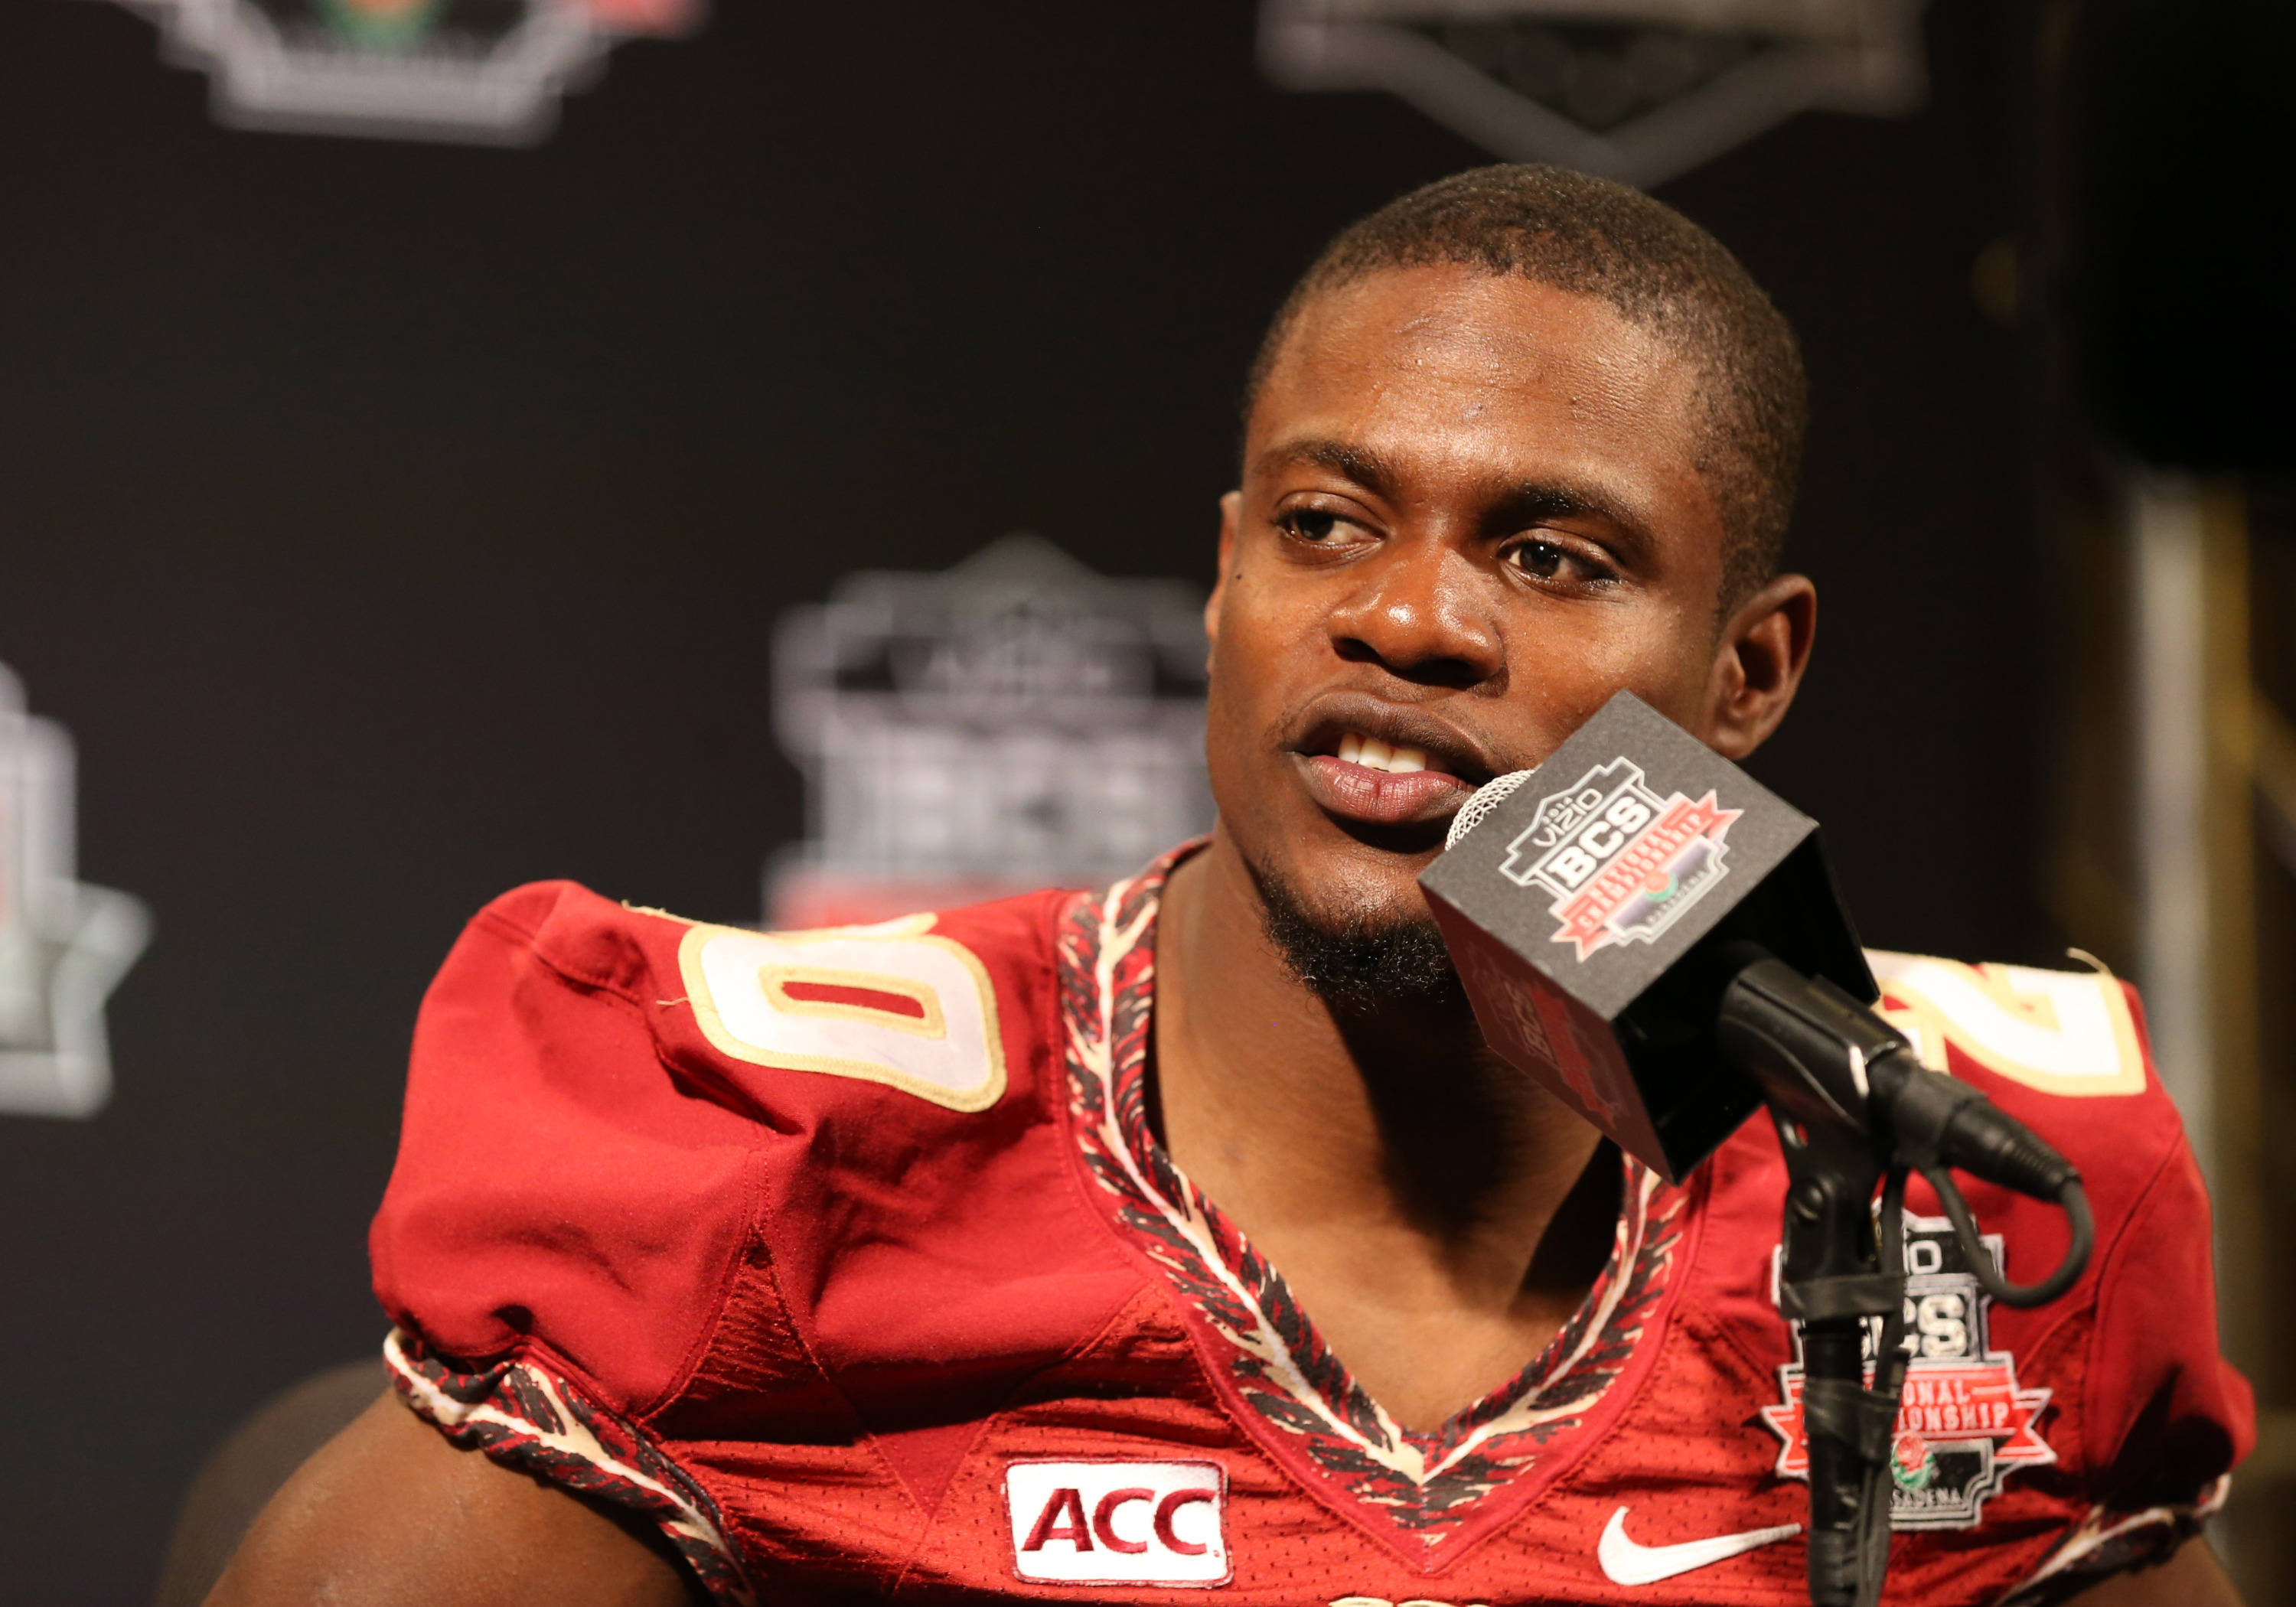 Jan 4, 2014; Newport Beach, CA, USA; Seminoles defensive back Lamarcus Joyner (20) answers questions during Media Day at Newport Beach Marriott. Matthew Emmons-USA TODAY Sports